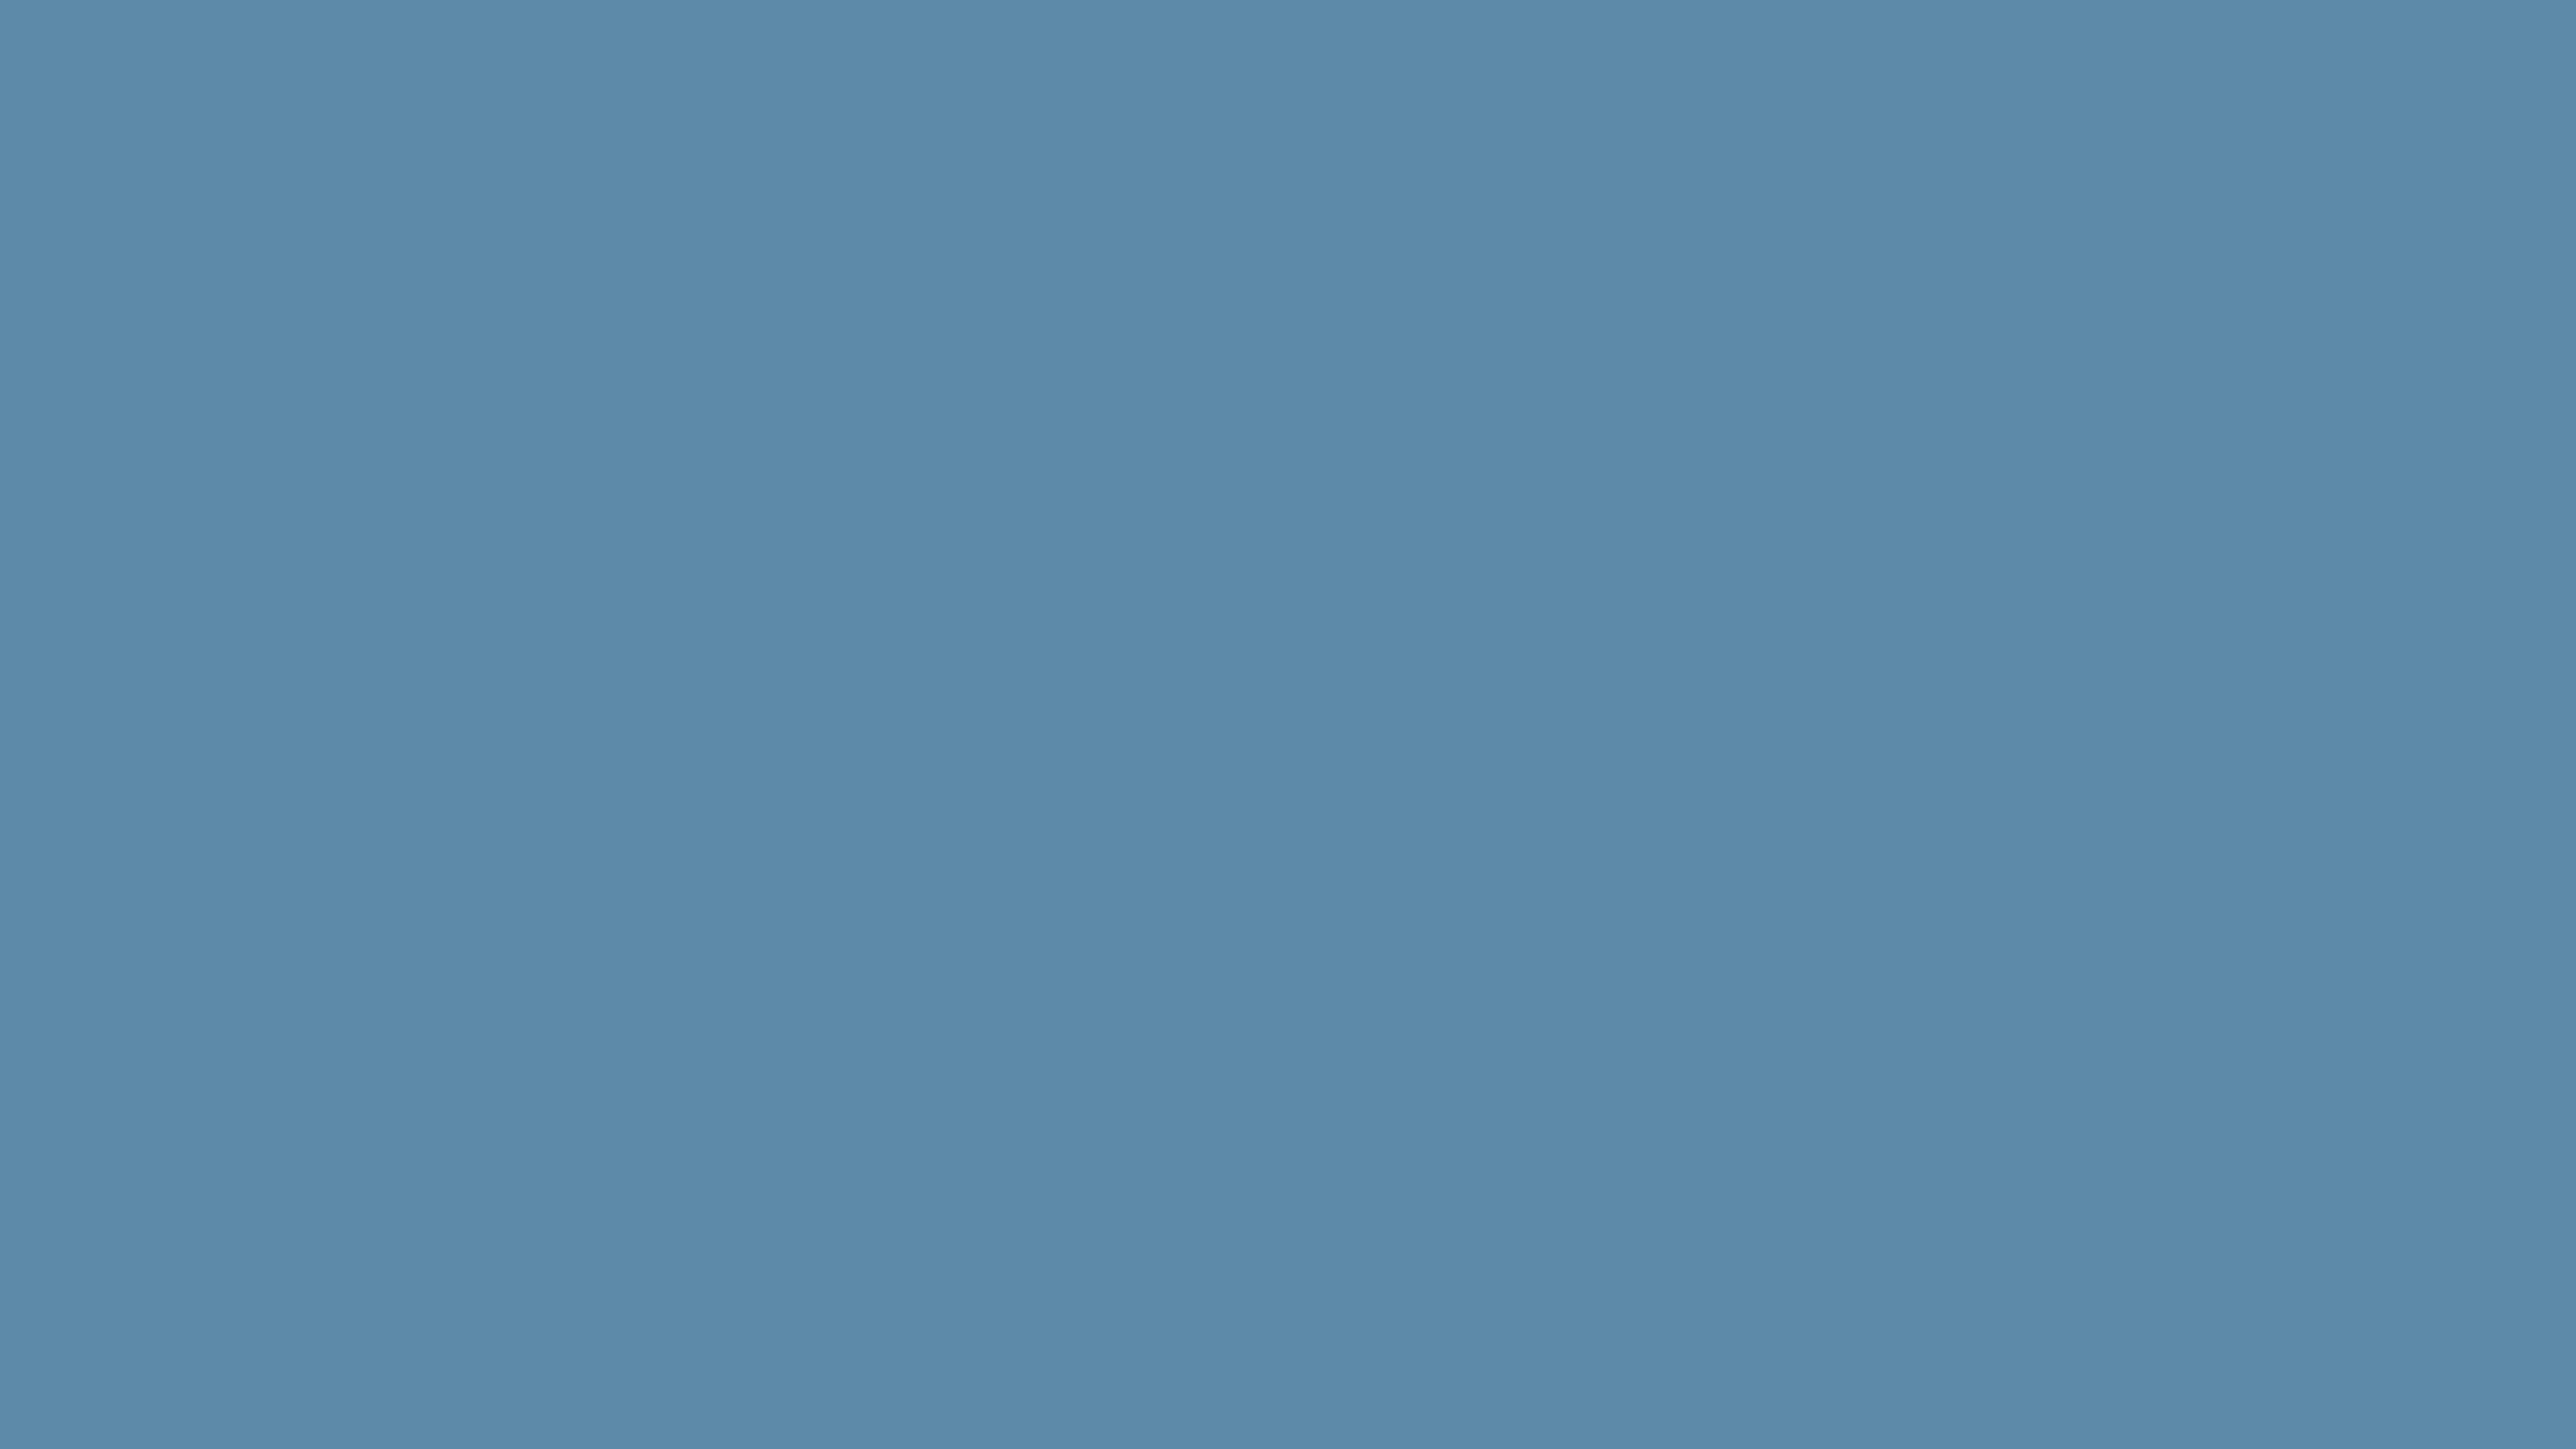 5120x2880 Air Force Blue Solid Color Background